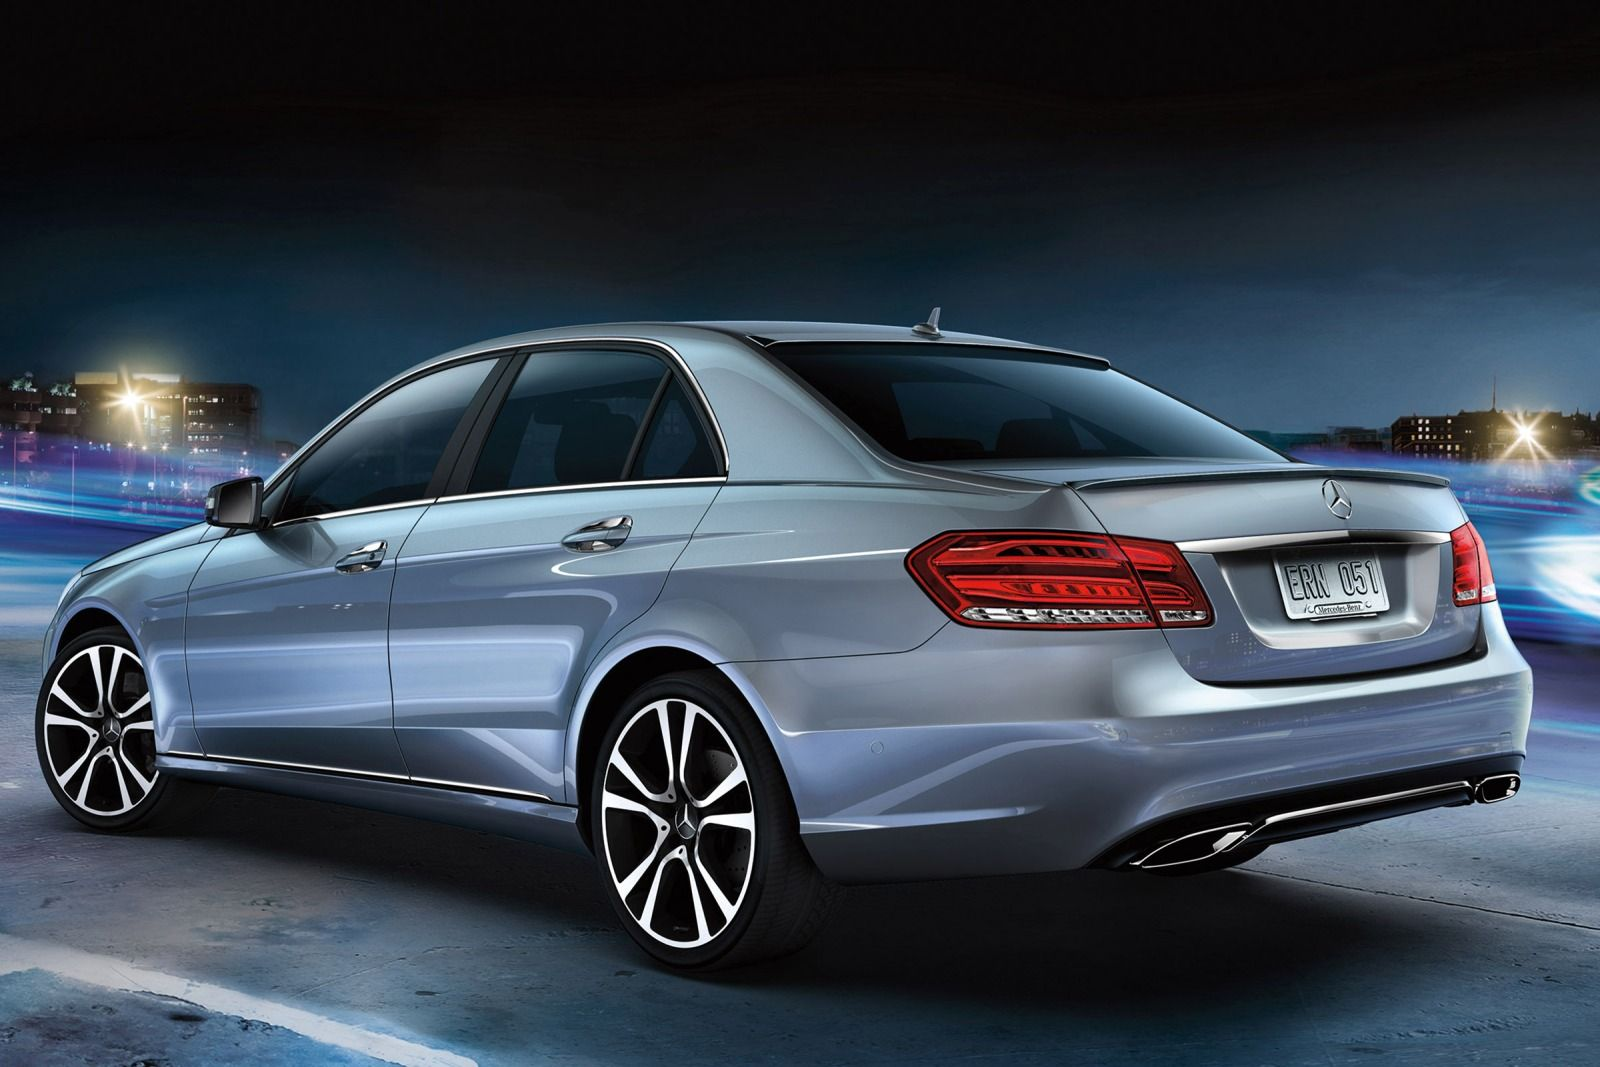 2015 mercedes benz e class information and photos zombiedrive